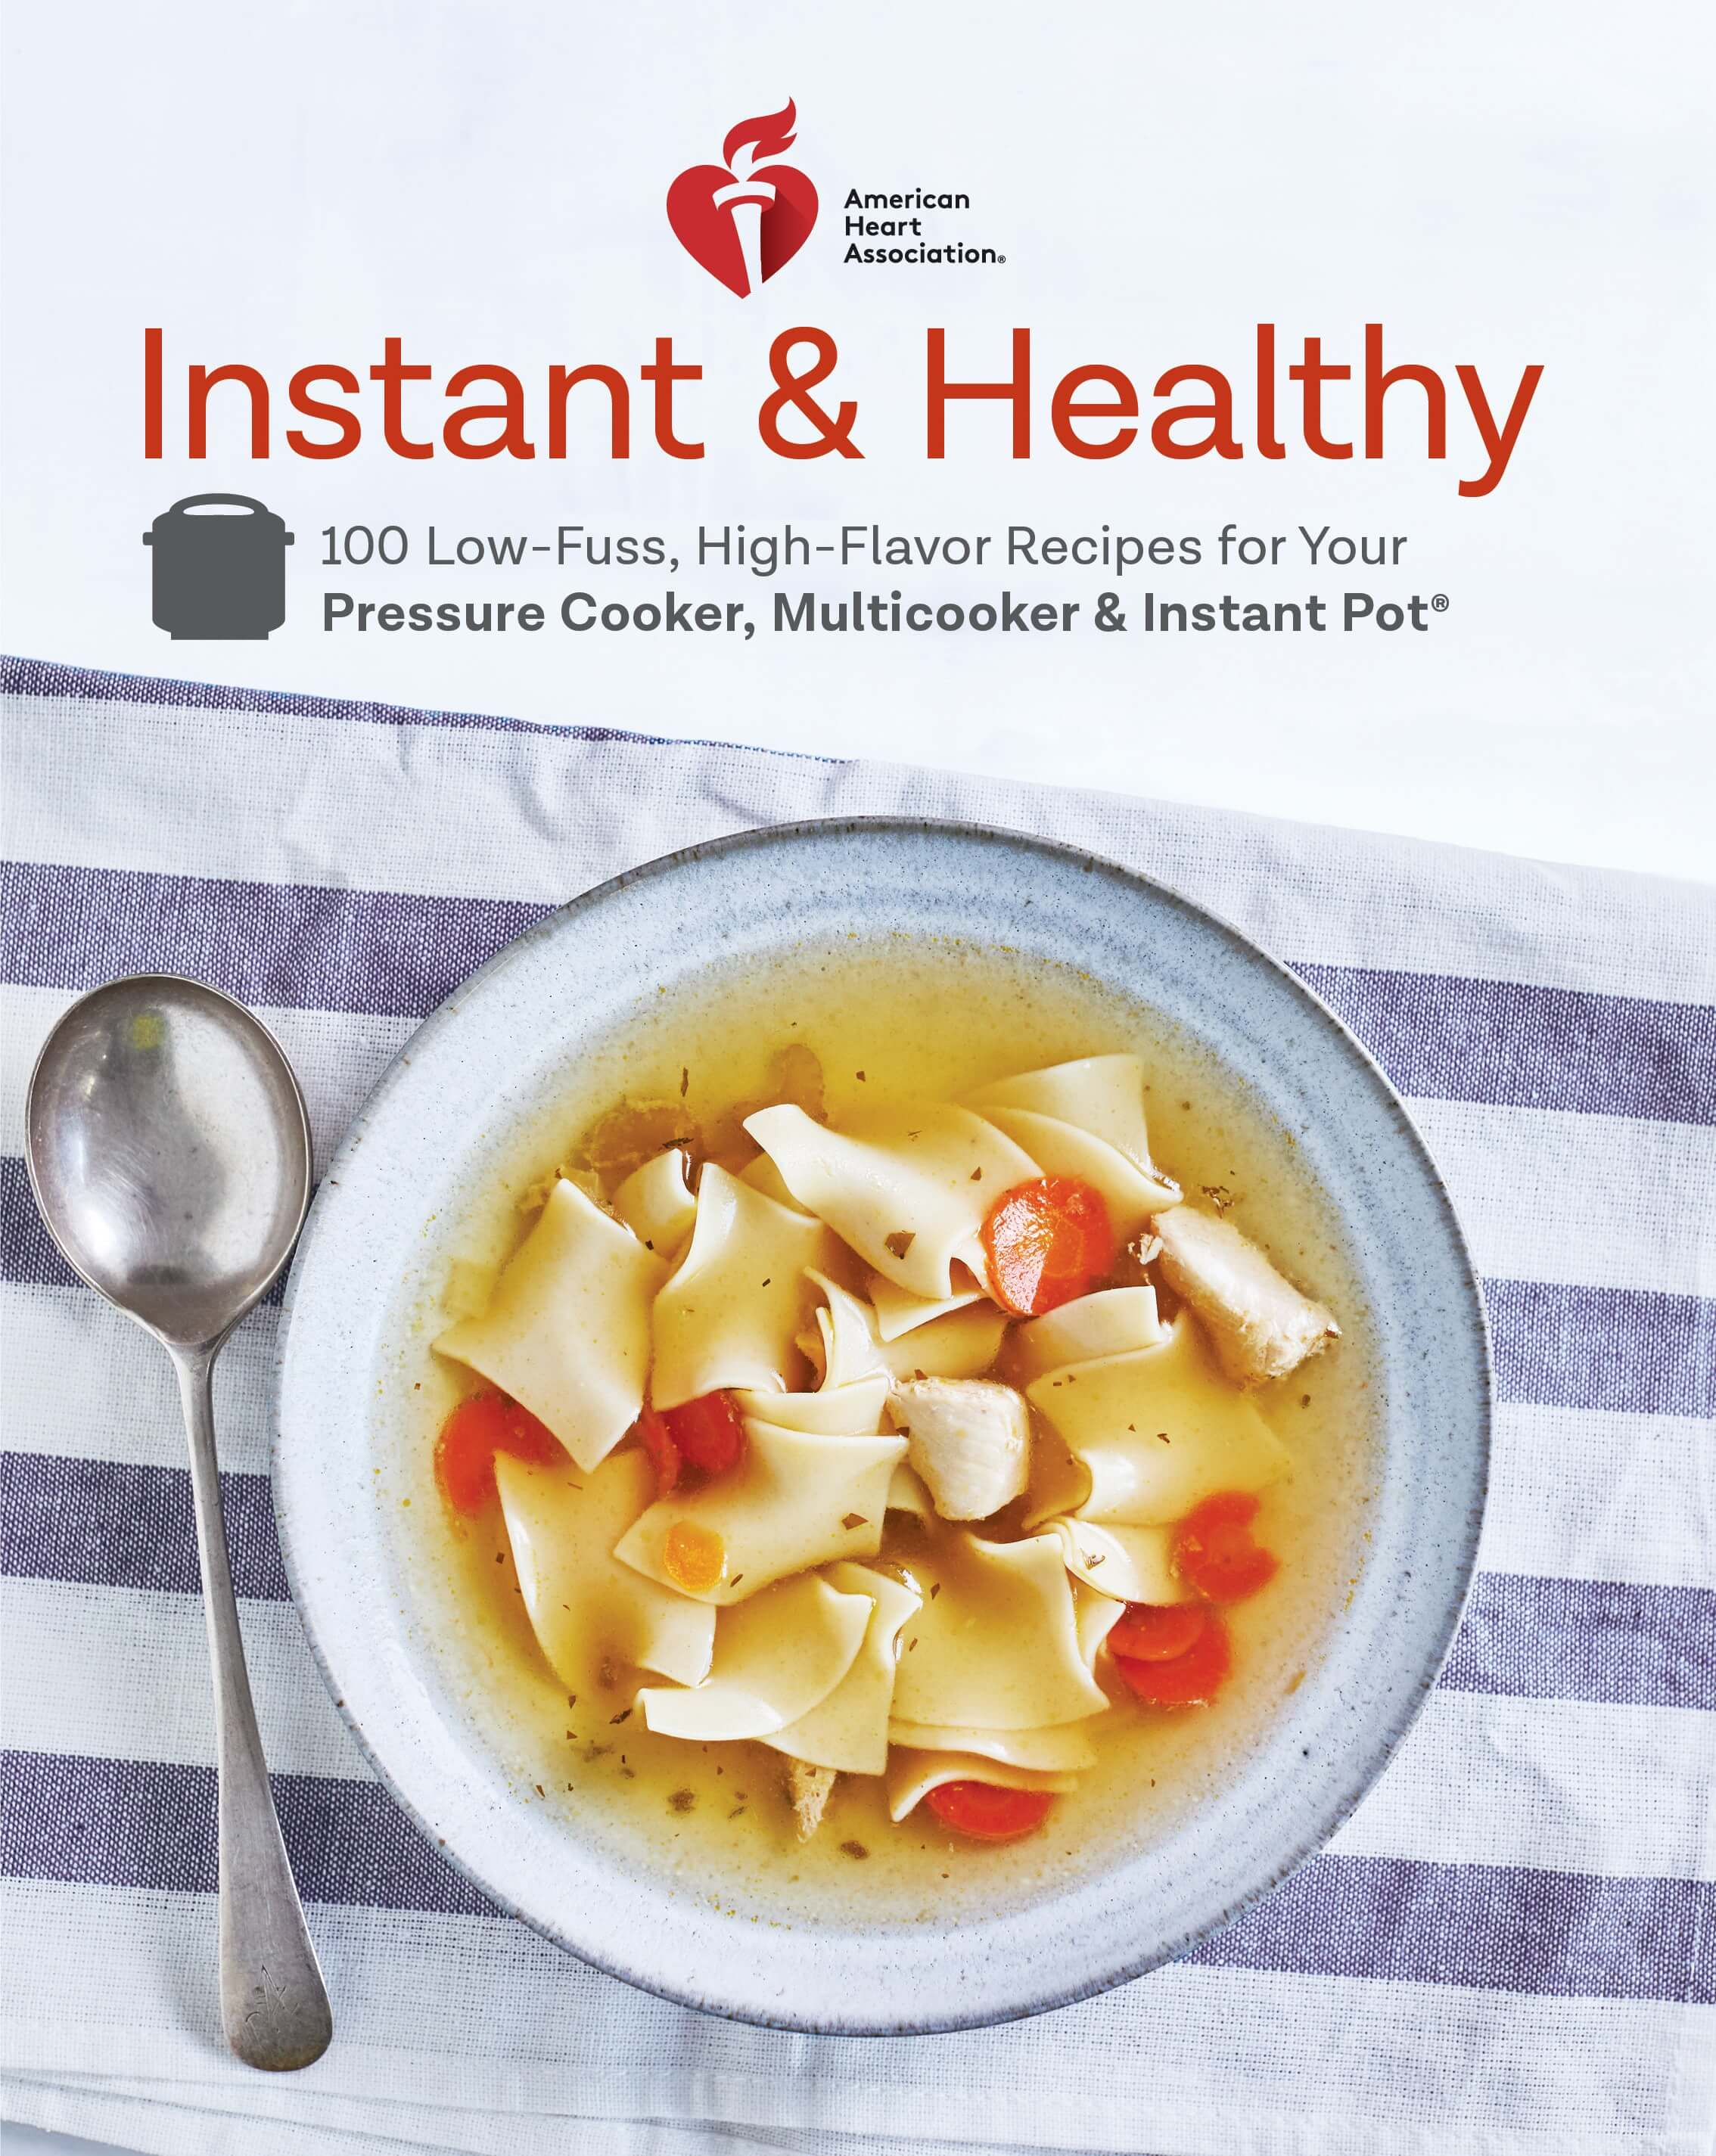 Instant & Healthy: 100 Low-Fuss, High-Flavor Recipes for Your Pressure Cooker, Multicooker & Instant Pot®